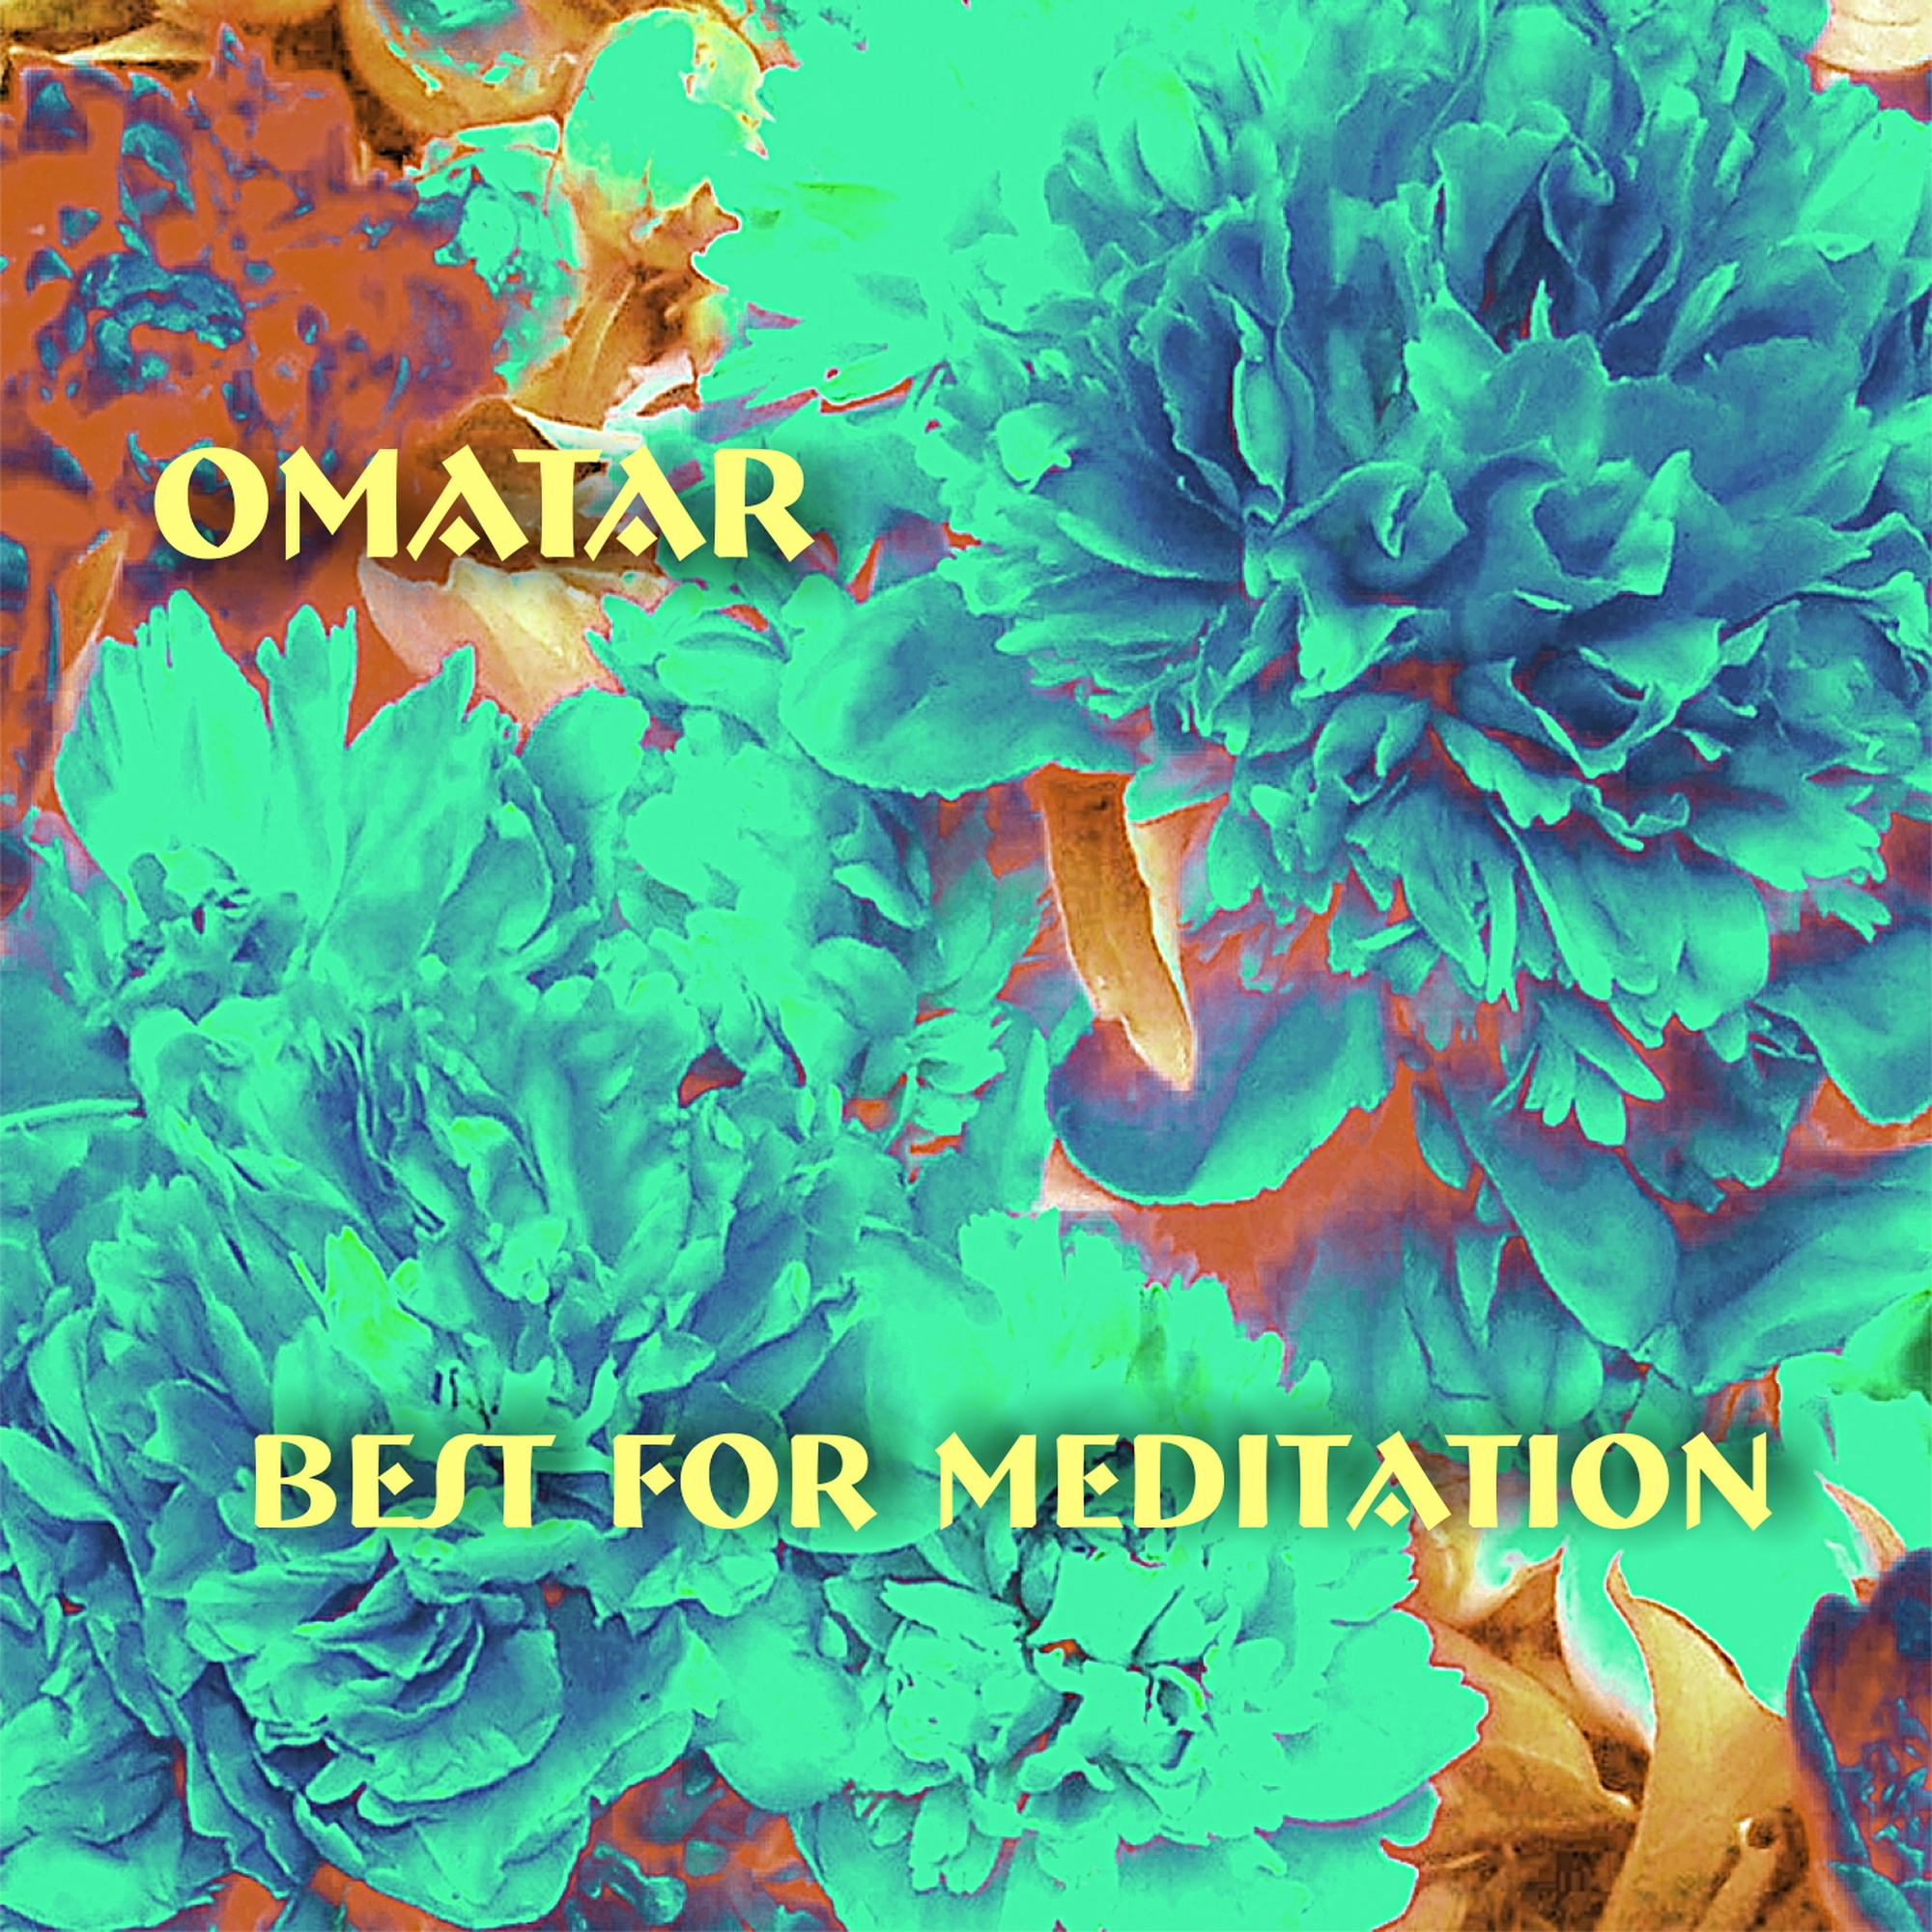 Omatar-Best-for-Meditation